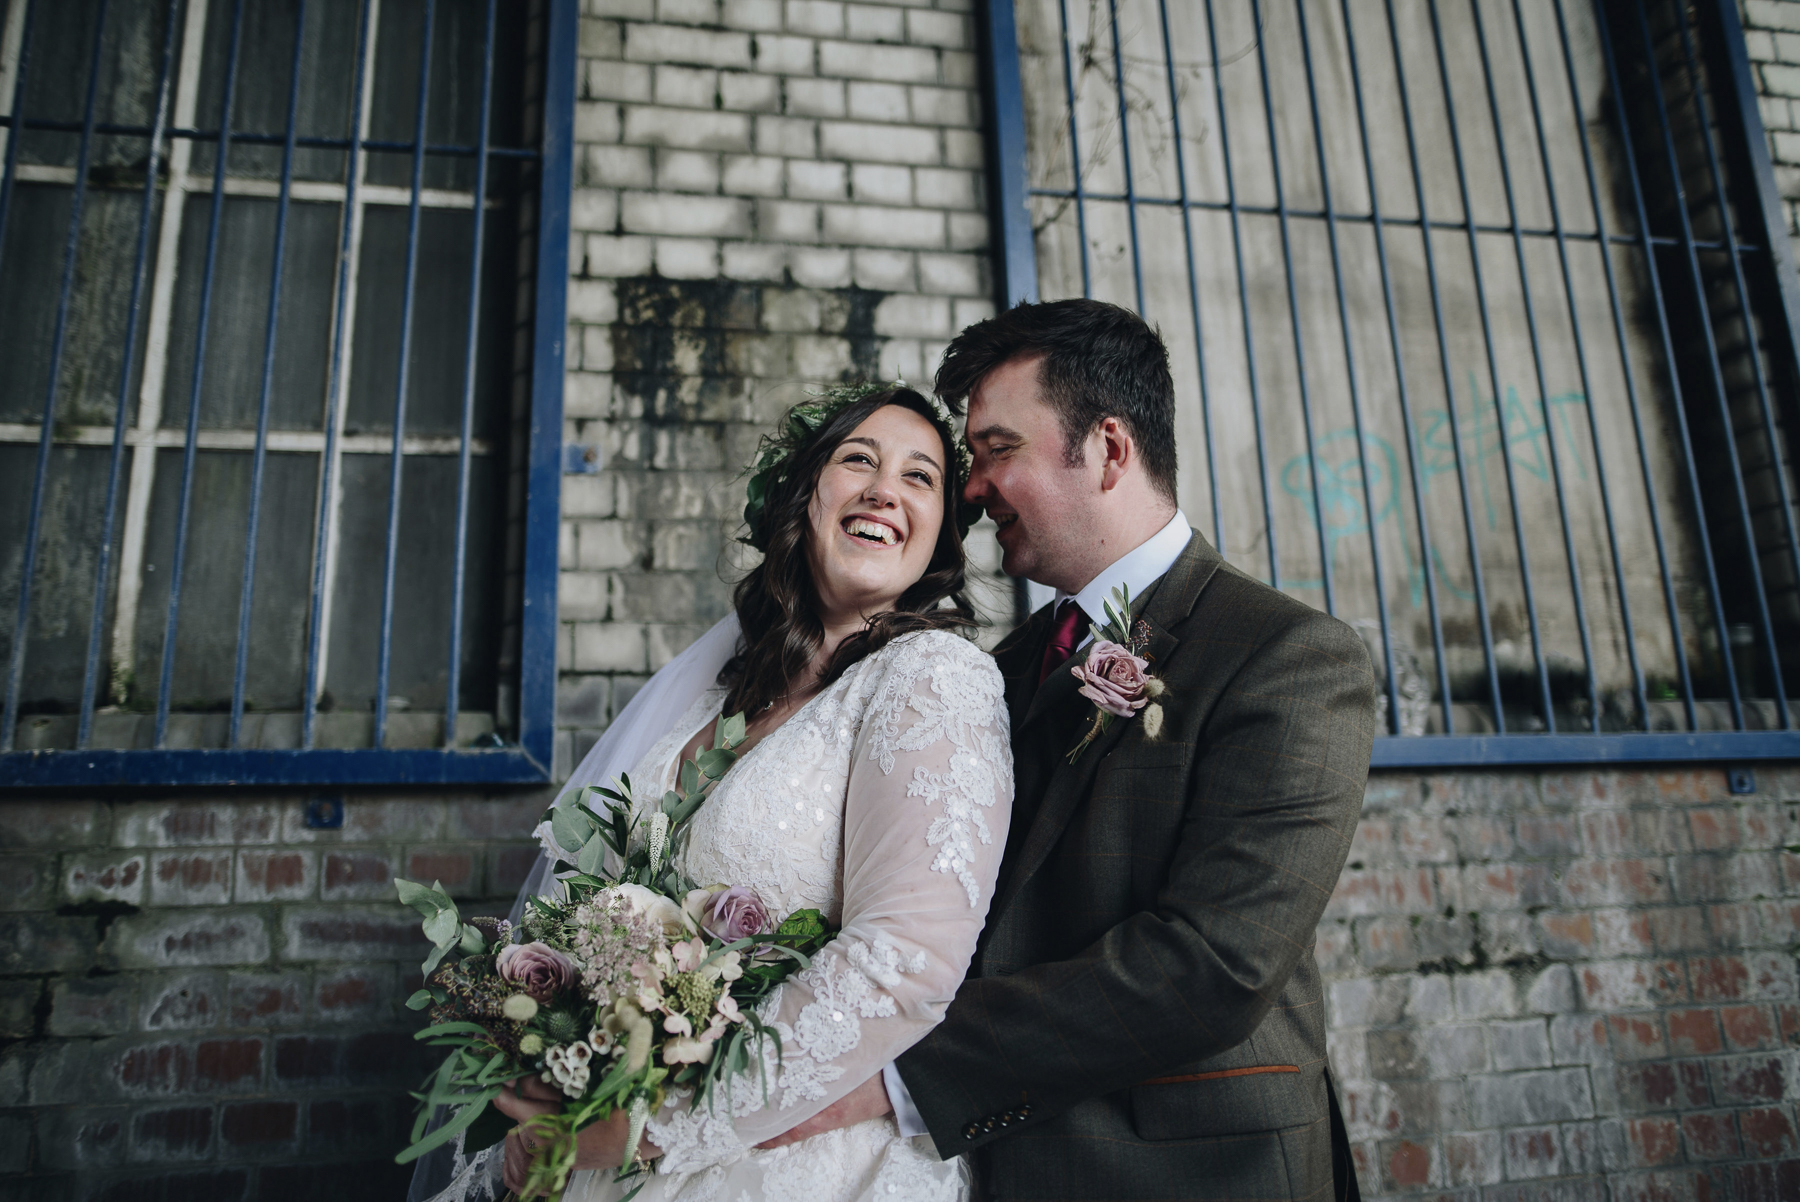 Alternative_Manchester_Wedding_Photography_The_Pin-Up_Bride_Photography-28.jpg